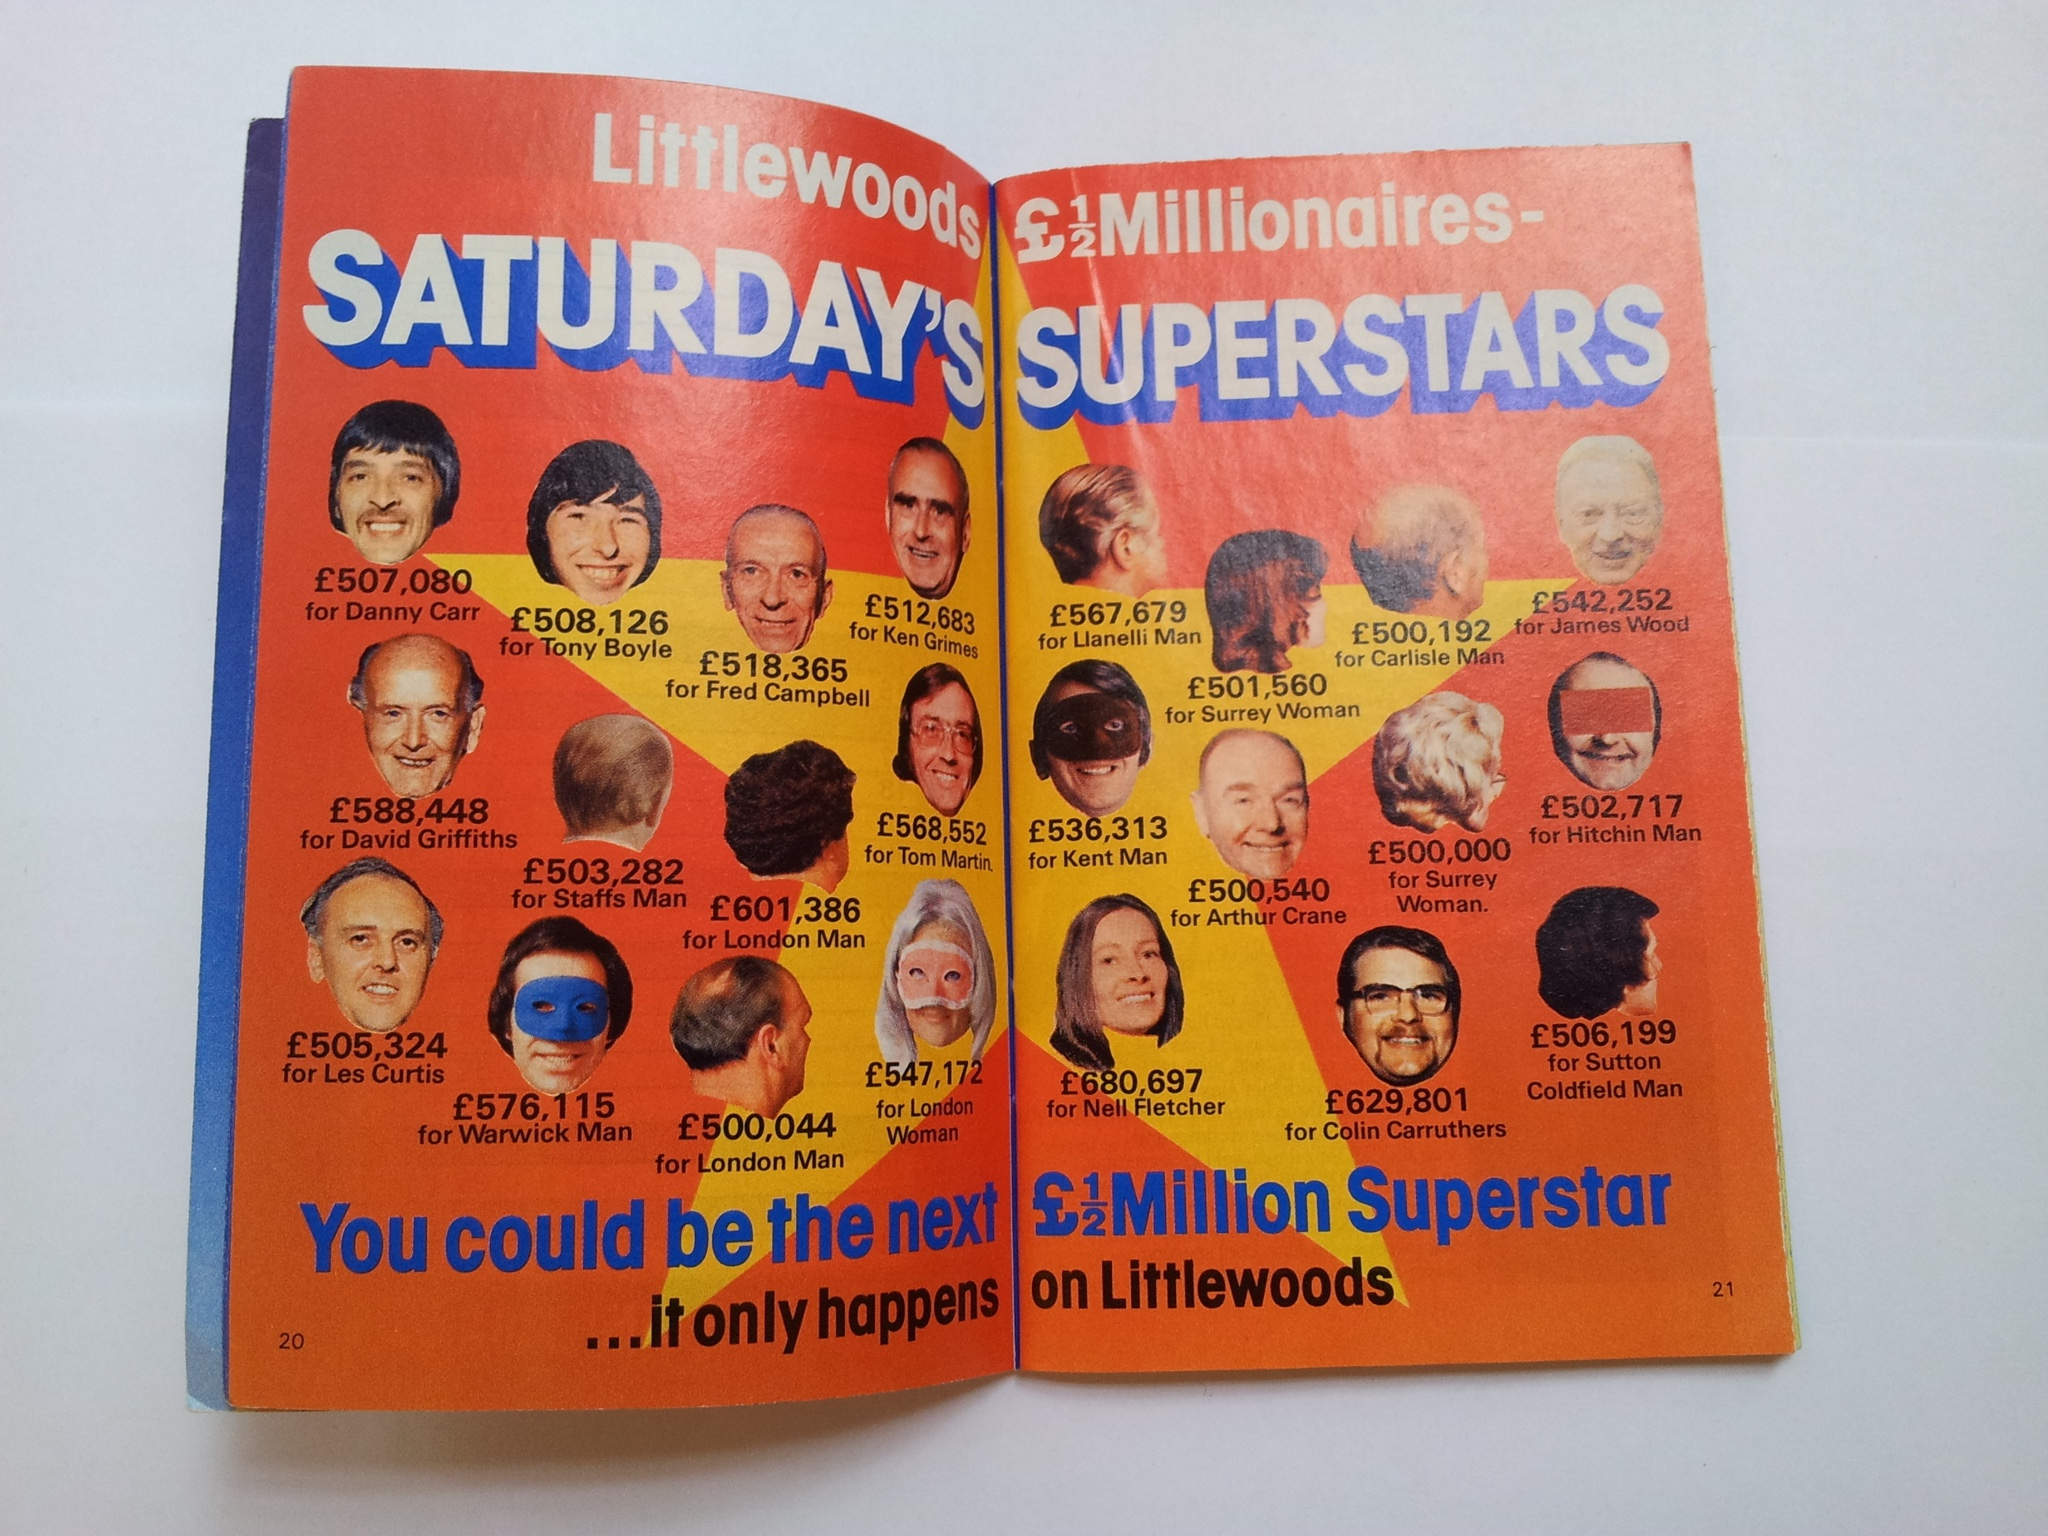 Littlewoods Saturday Superstars from the Littlewoods Pools